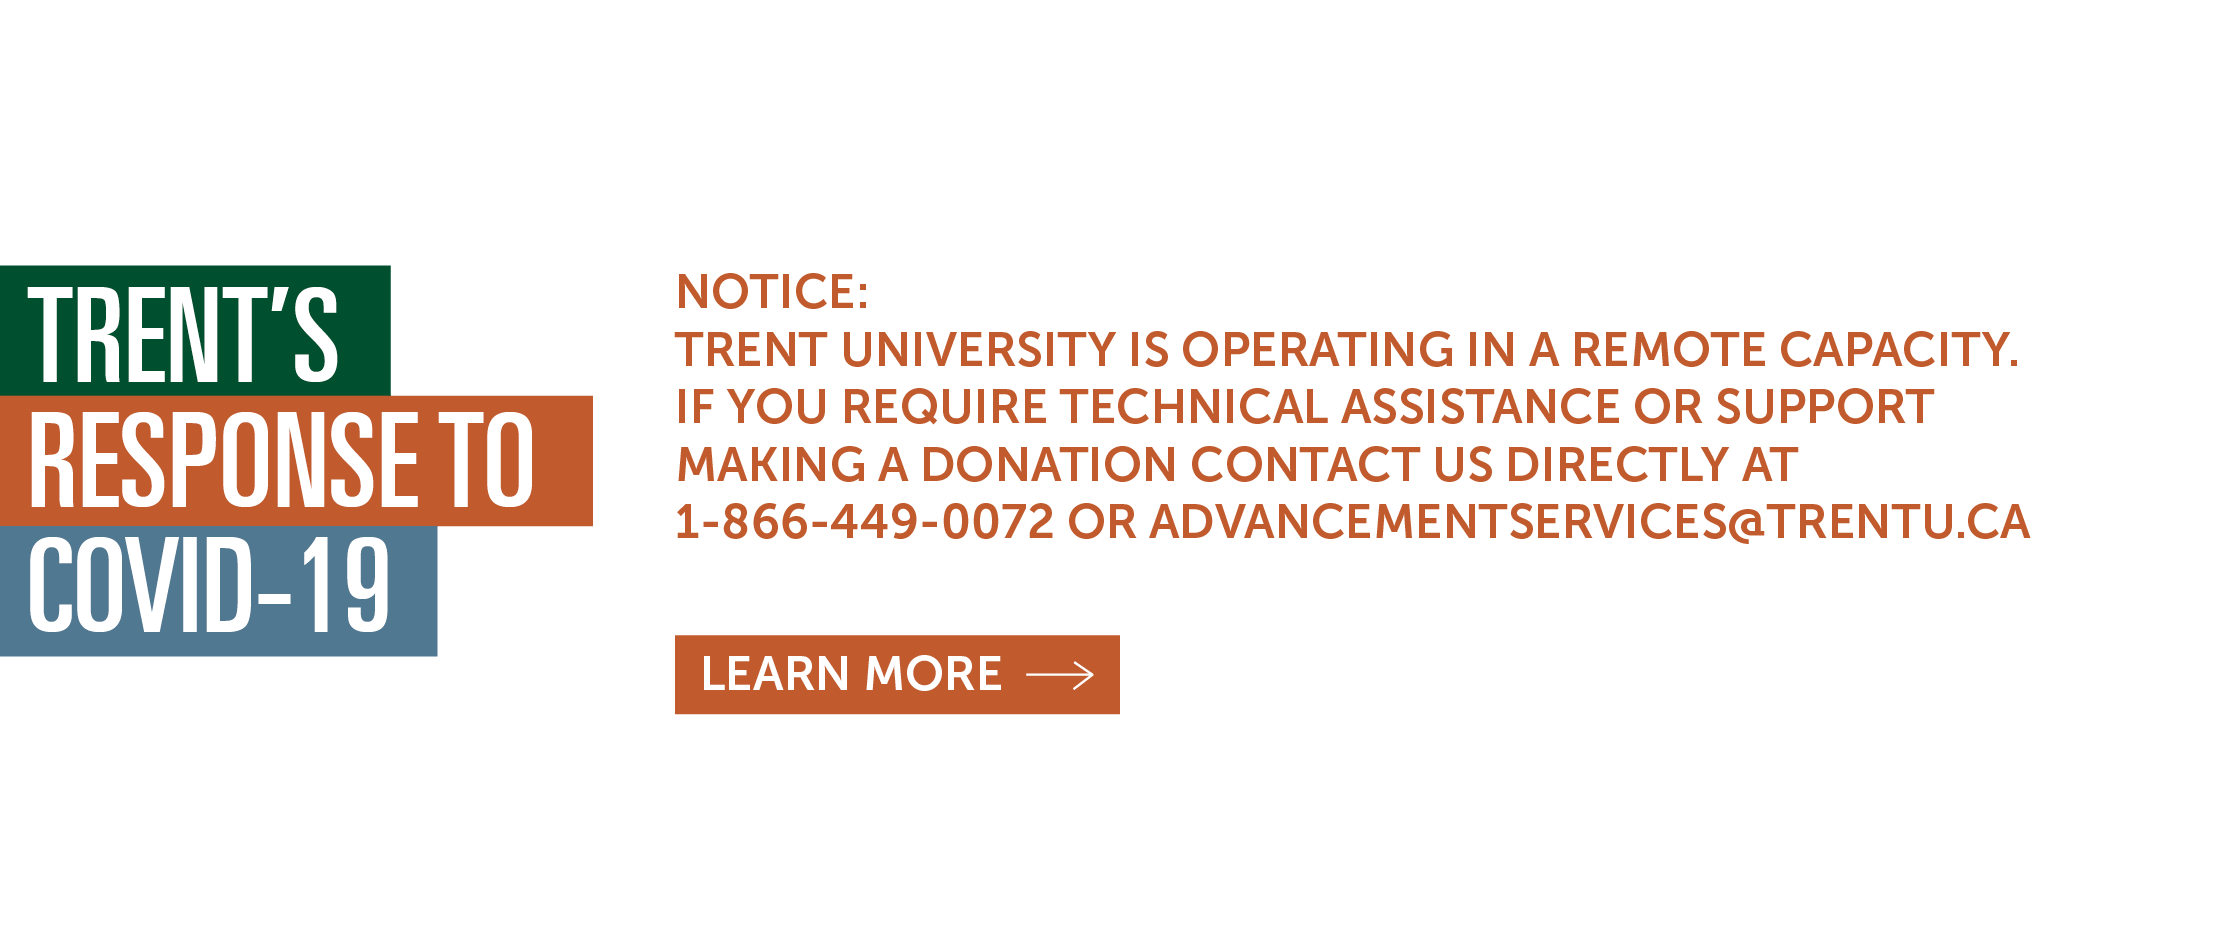 Notice: Trent University is operating in a remote capacity. If you require technical assistance or support making a donation contact us directly at 1-866-449-0072 or advancementservices@trentu.ca. Learn more